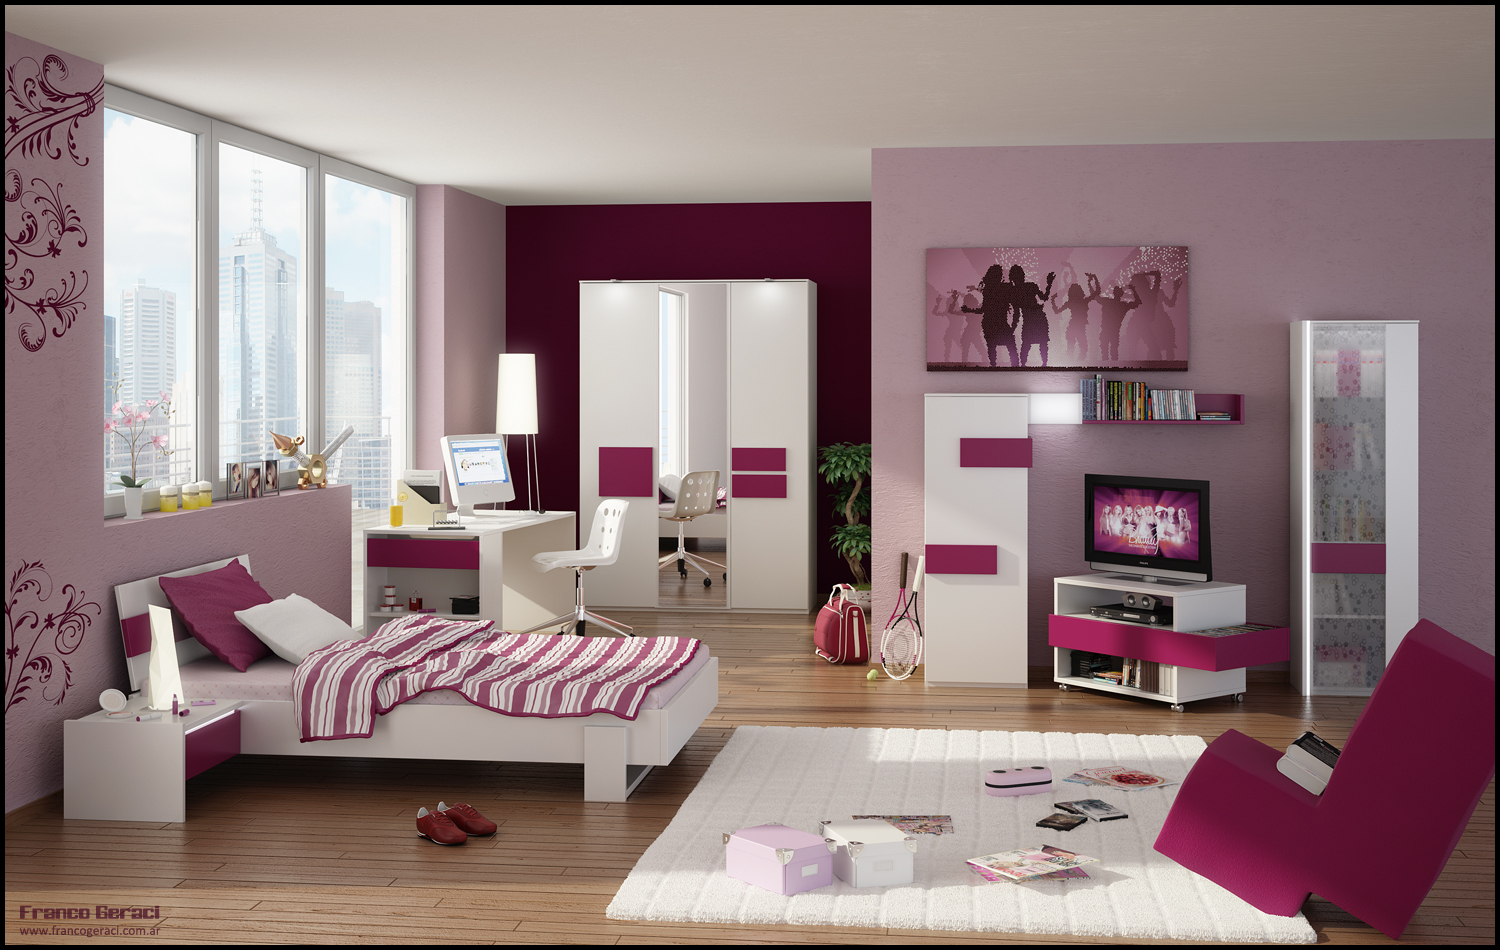 Amazing Bedroom Room Designs 1500 x 950 · 847 kB · jpeg